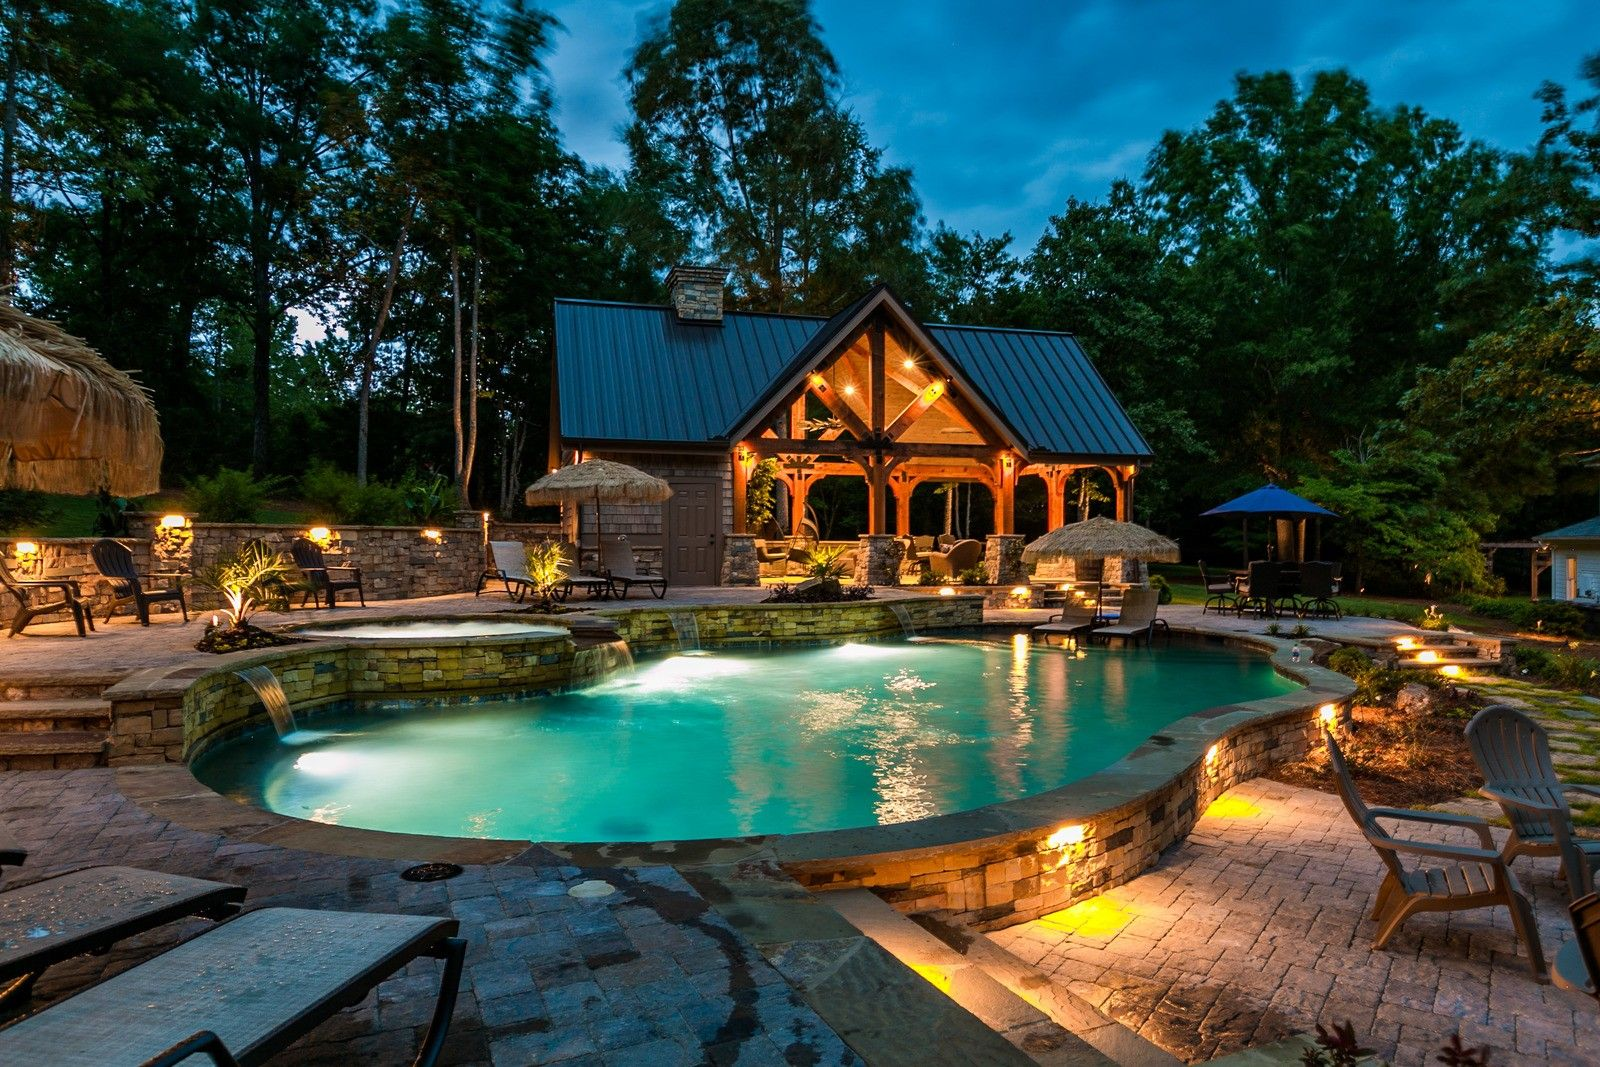 Pin By Gina Gentil On Pools   Vacation Home Rentals, Home, Log Cabin